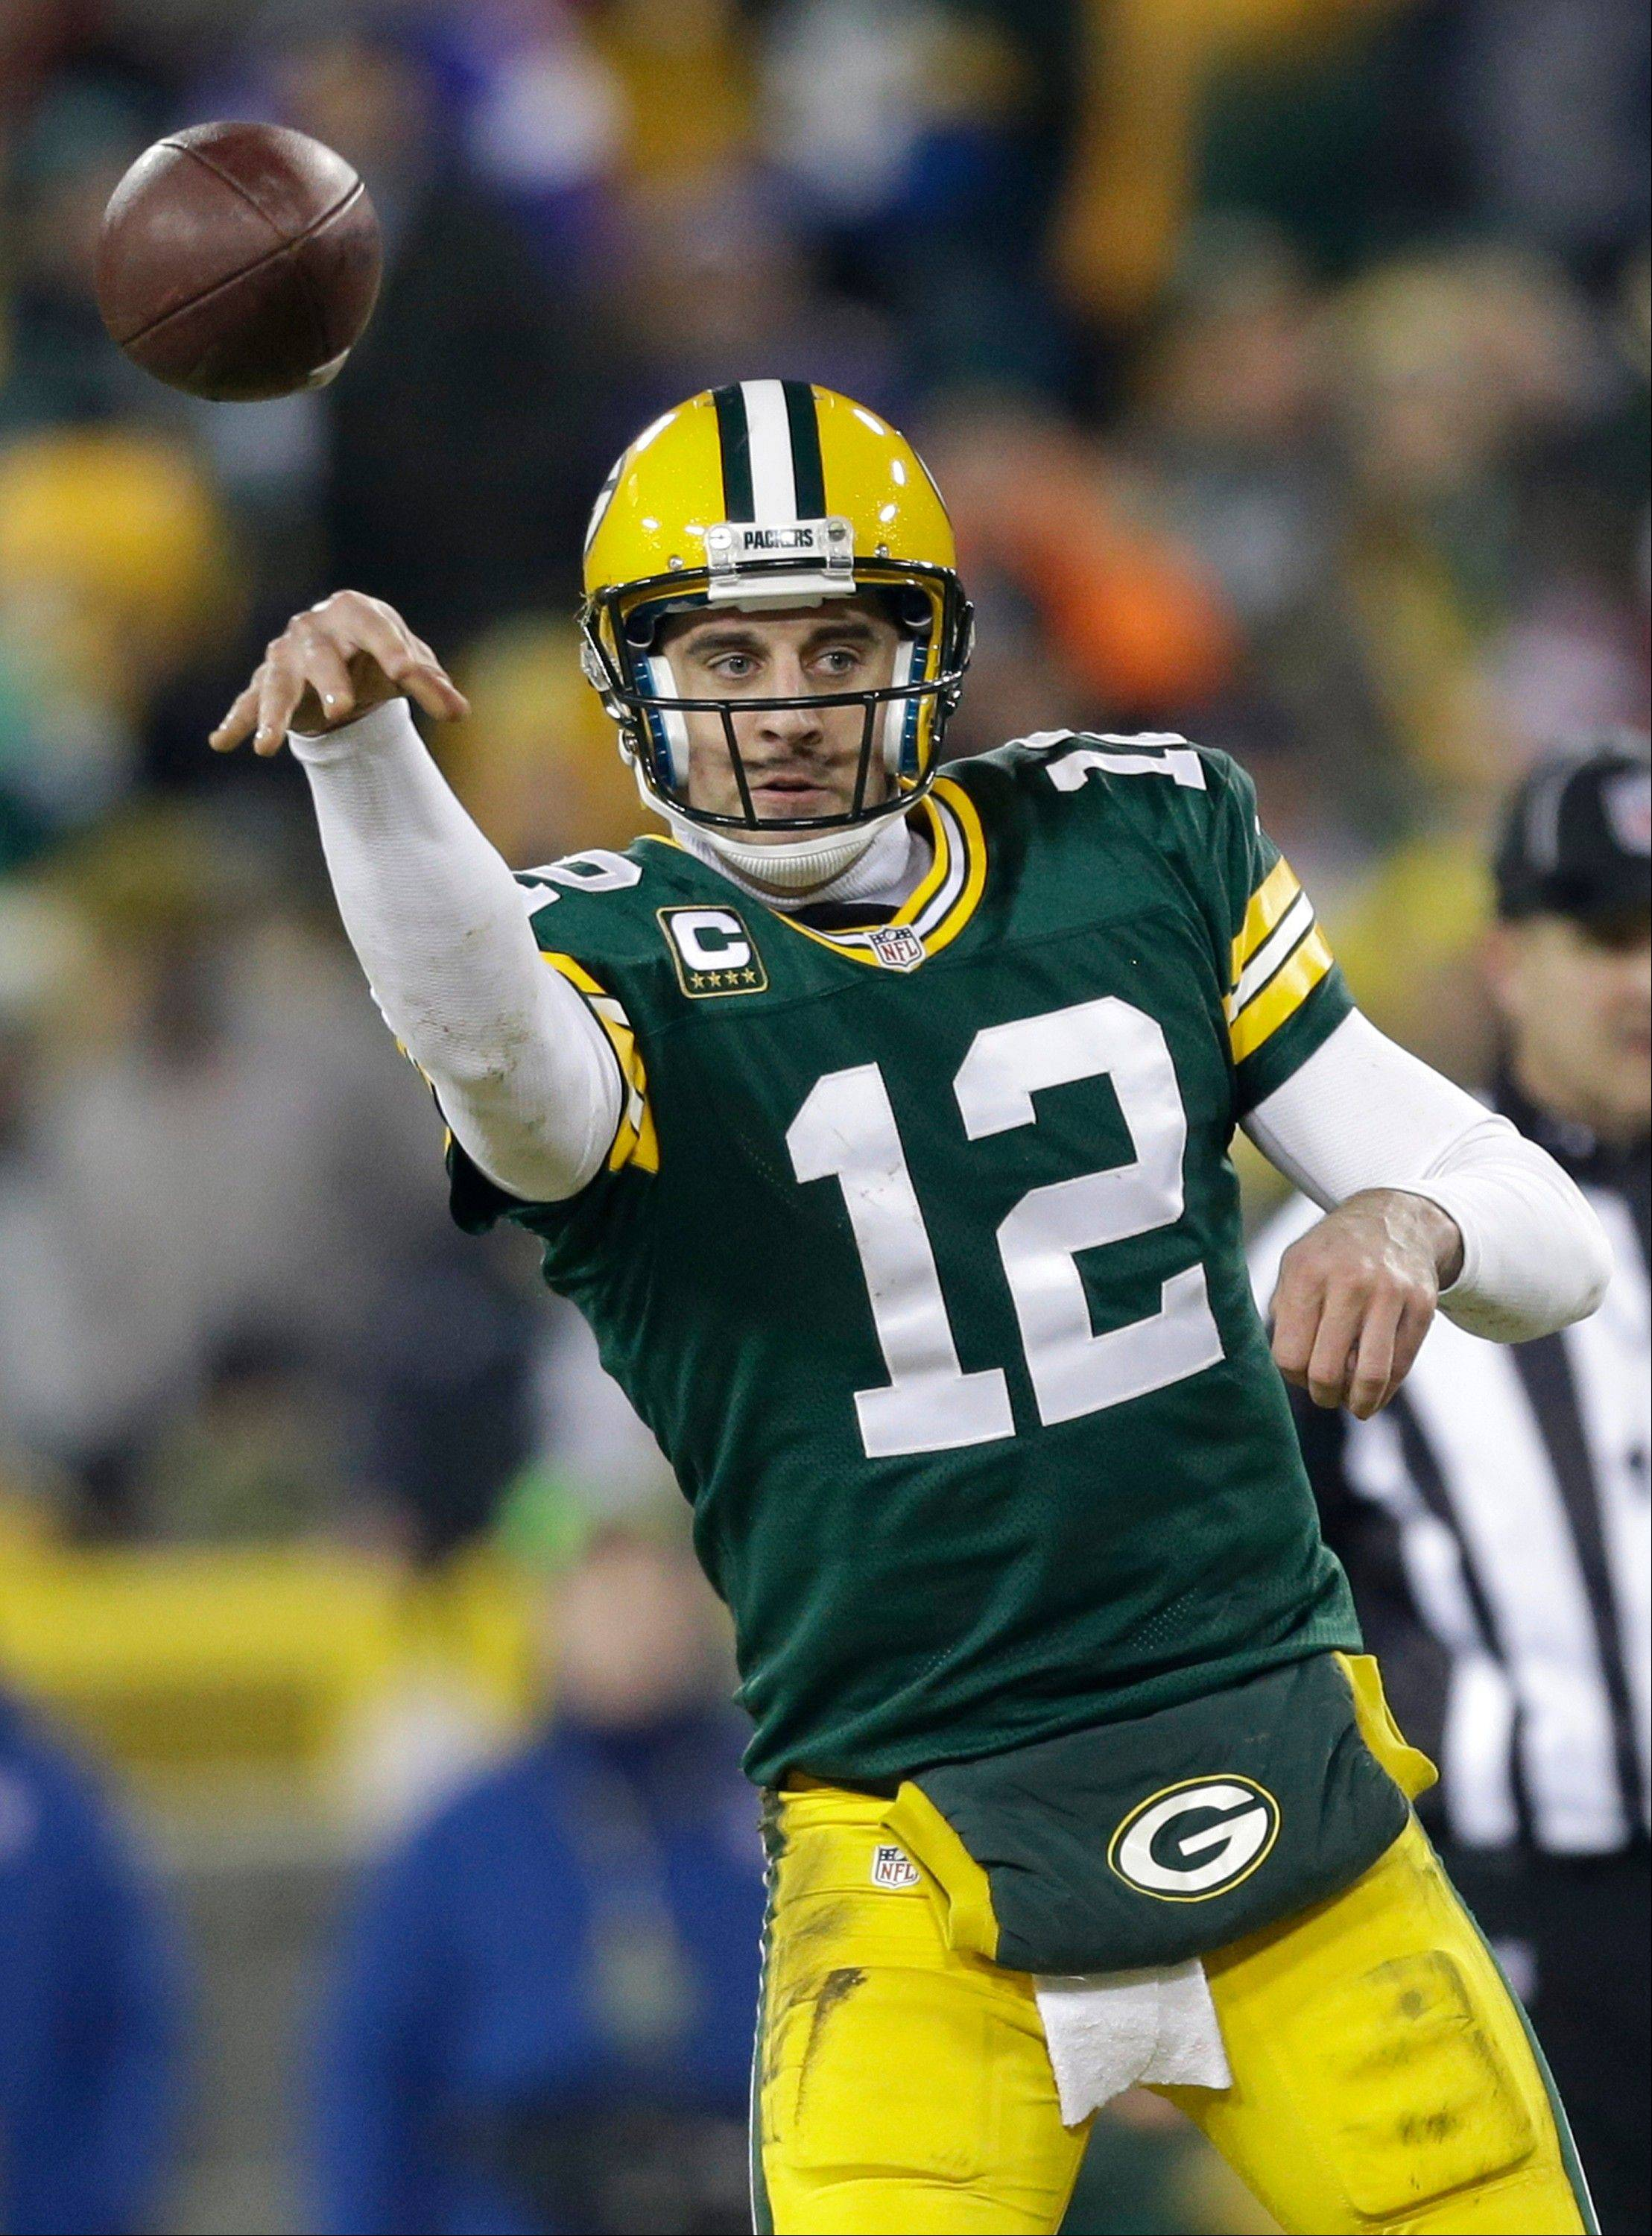 Aaron Rodgers and the Green Bay Packers showed how dangerous they can be when they're at full strength Saturday night, overwhelming the Minnesota Vikings 24-10 in an NFC wild-card game that was never really close.